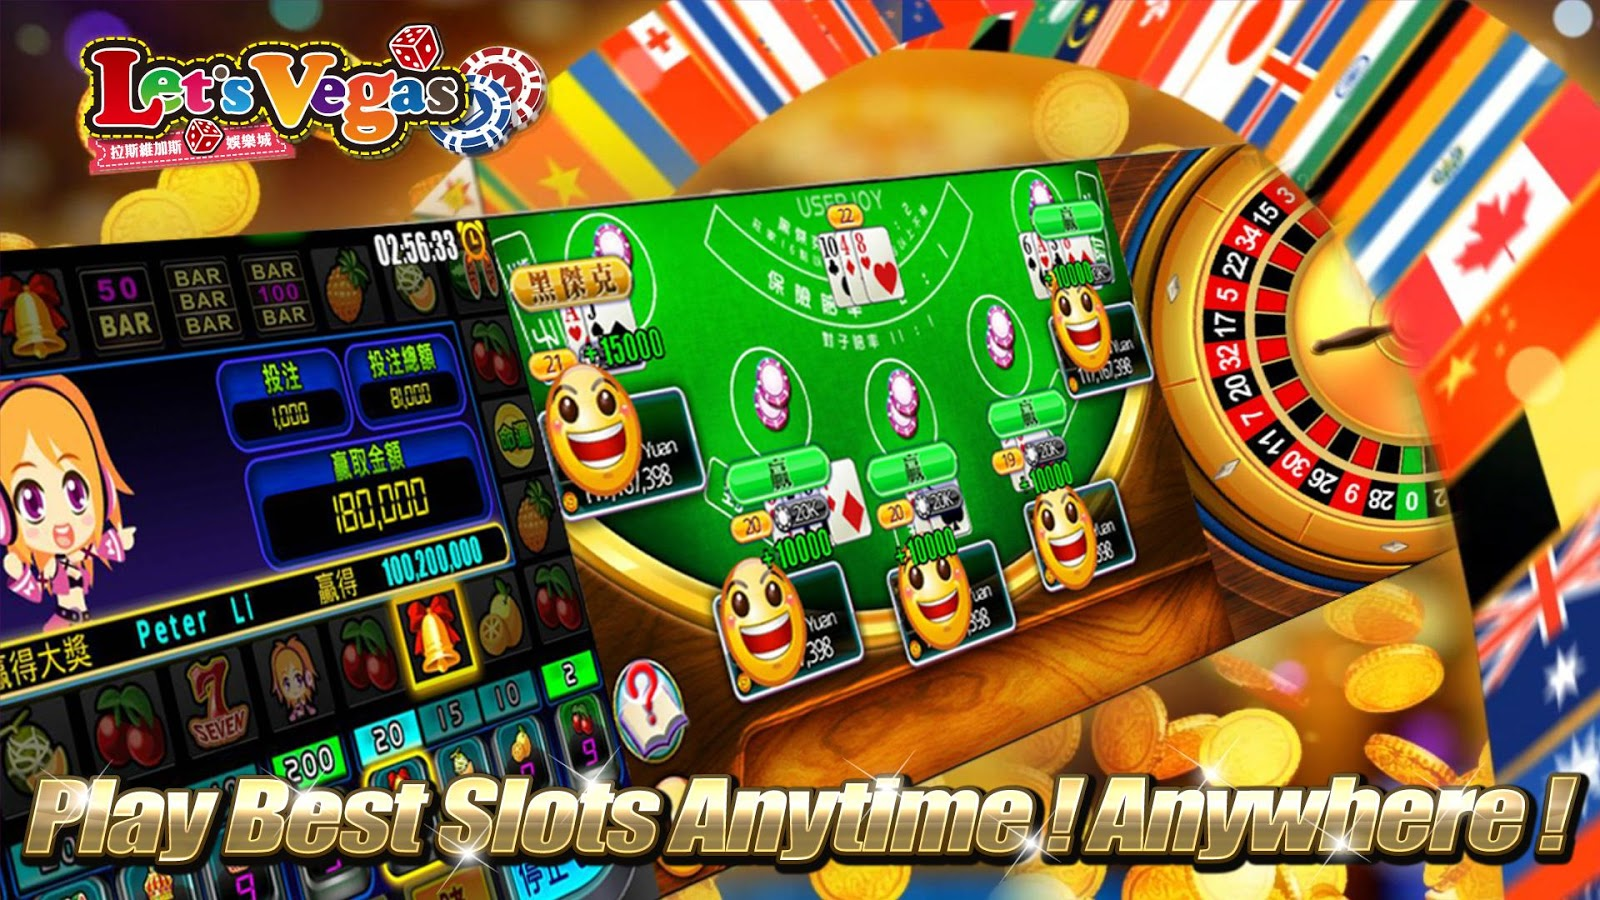 Let's Vegas Slots Screenshot 11